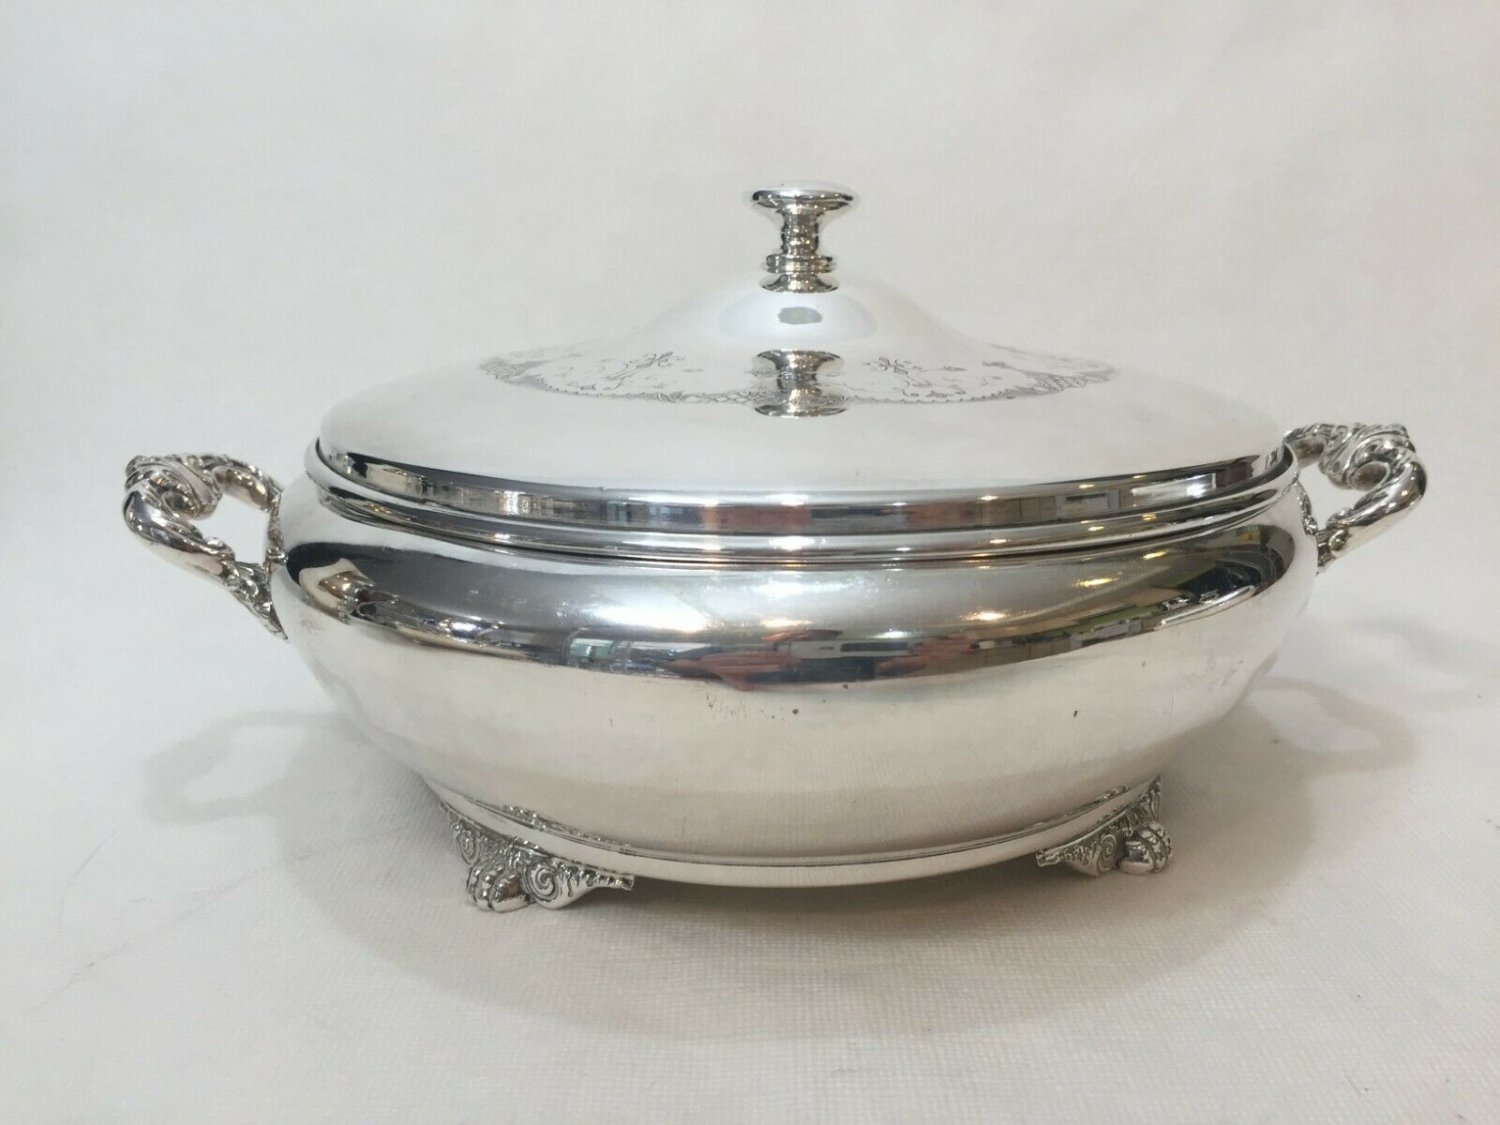 VTG WM Rogers Hamilton Silverplate Serving Dish w/Anchor Hocking Glass Insert